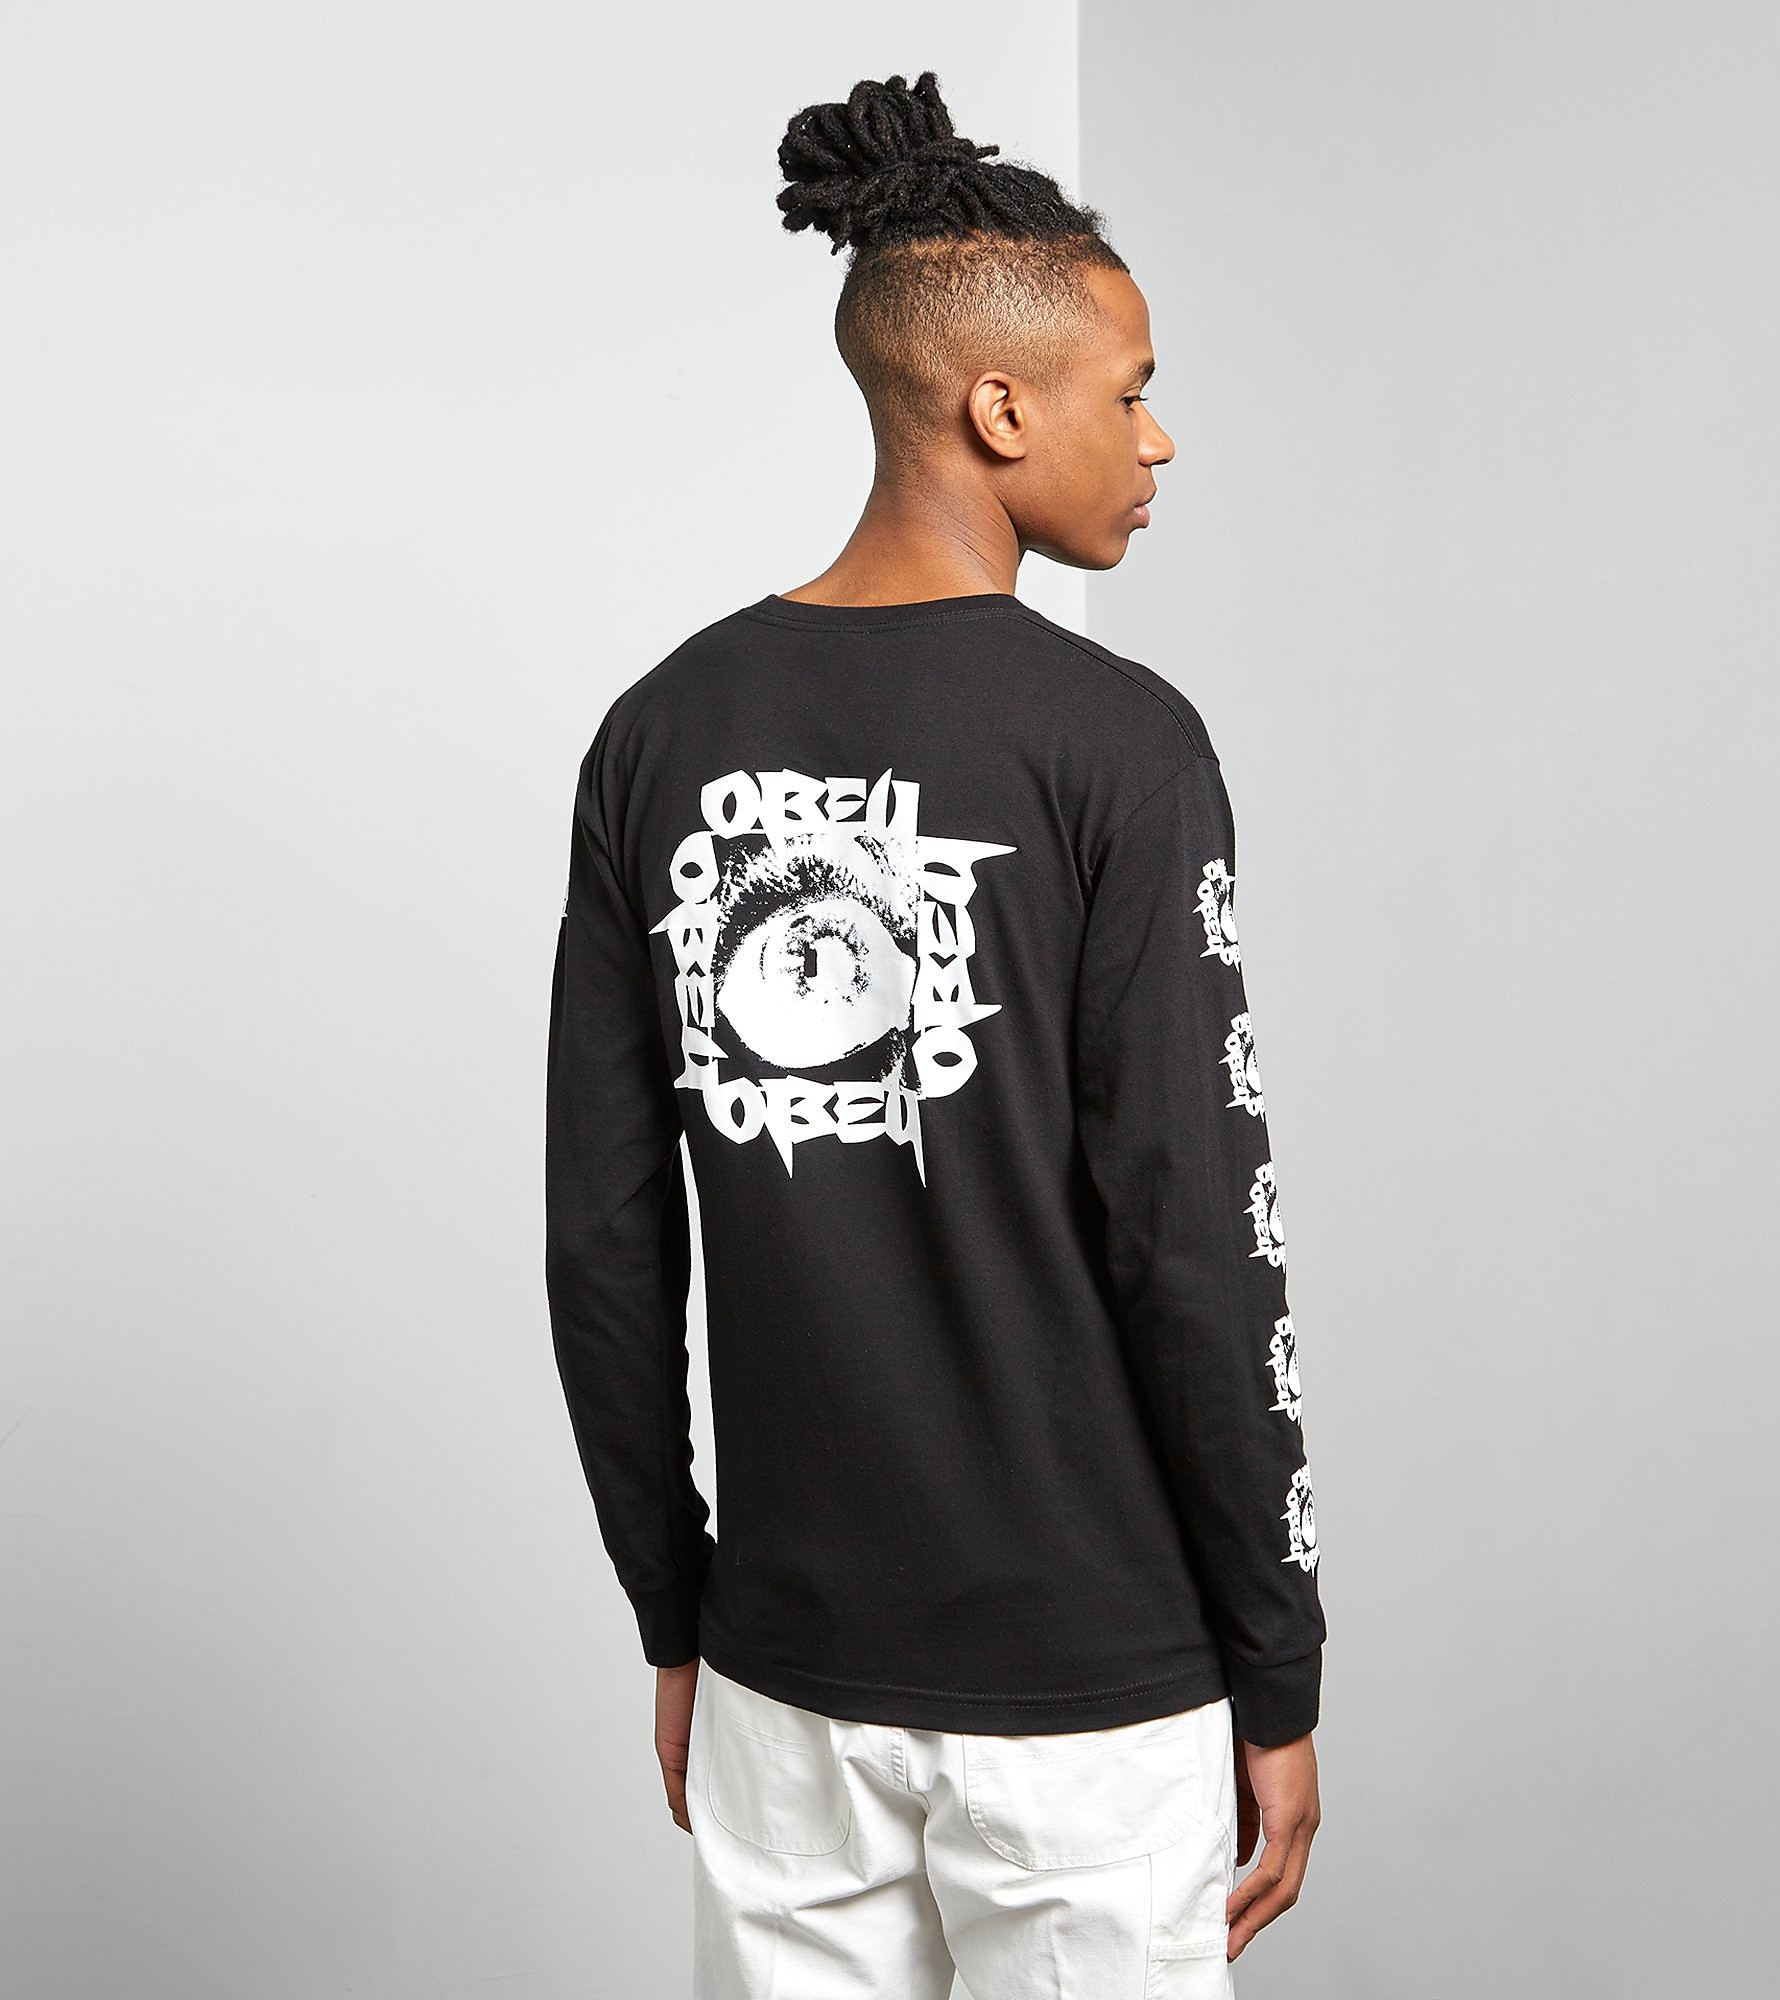 Obey Long Sleeved Tunnel Vision T-Shirt